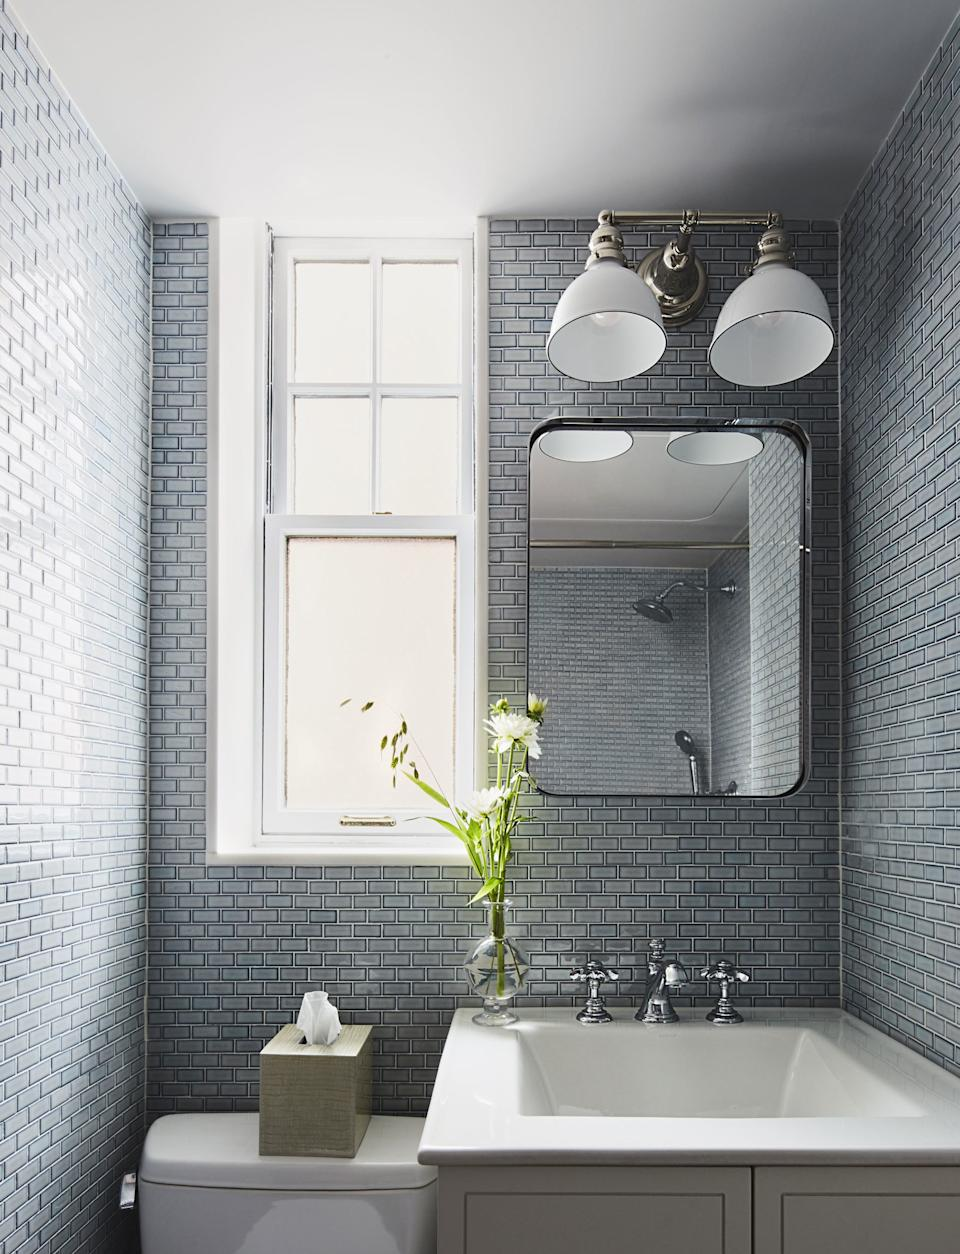 McGrath II used floor tile to cover the walls of this small bathroom.